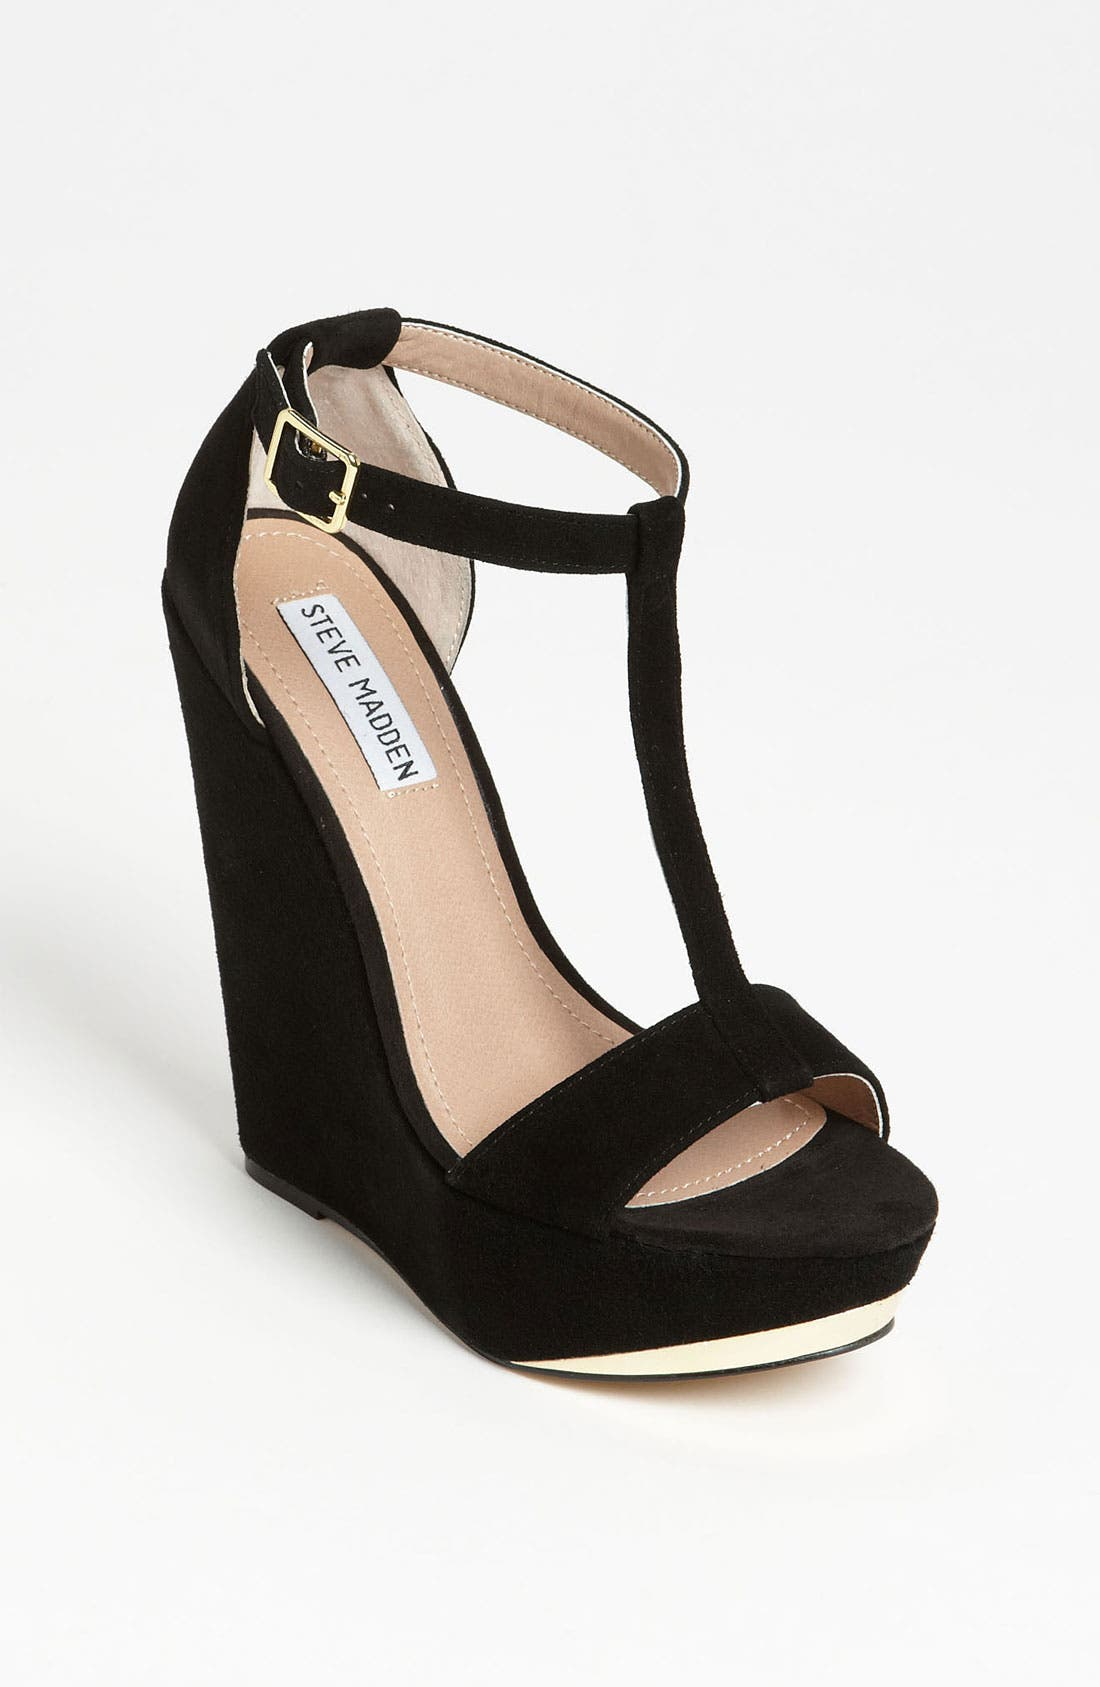 Alternate Image 1 Selected - Steve Madden 'Xtrime' Wedge Platform